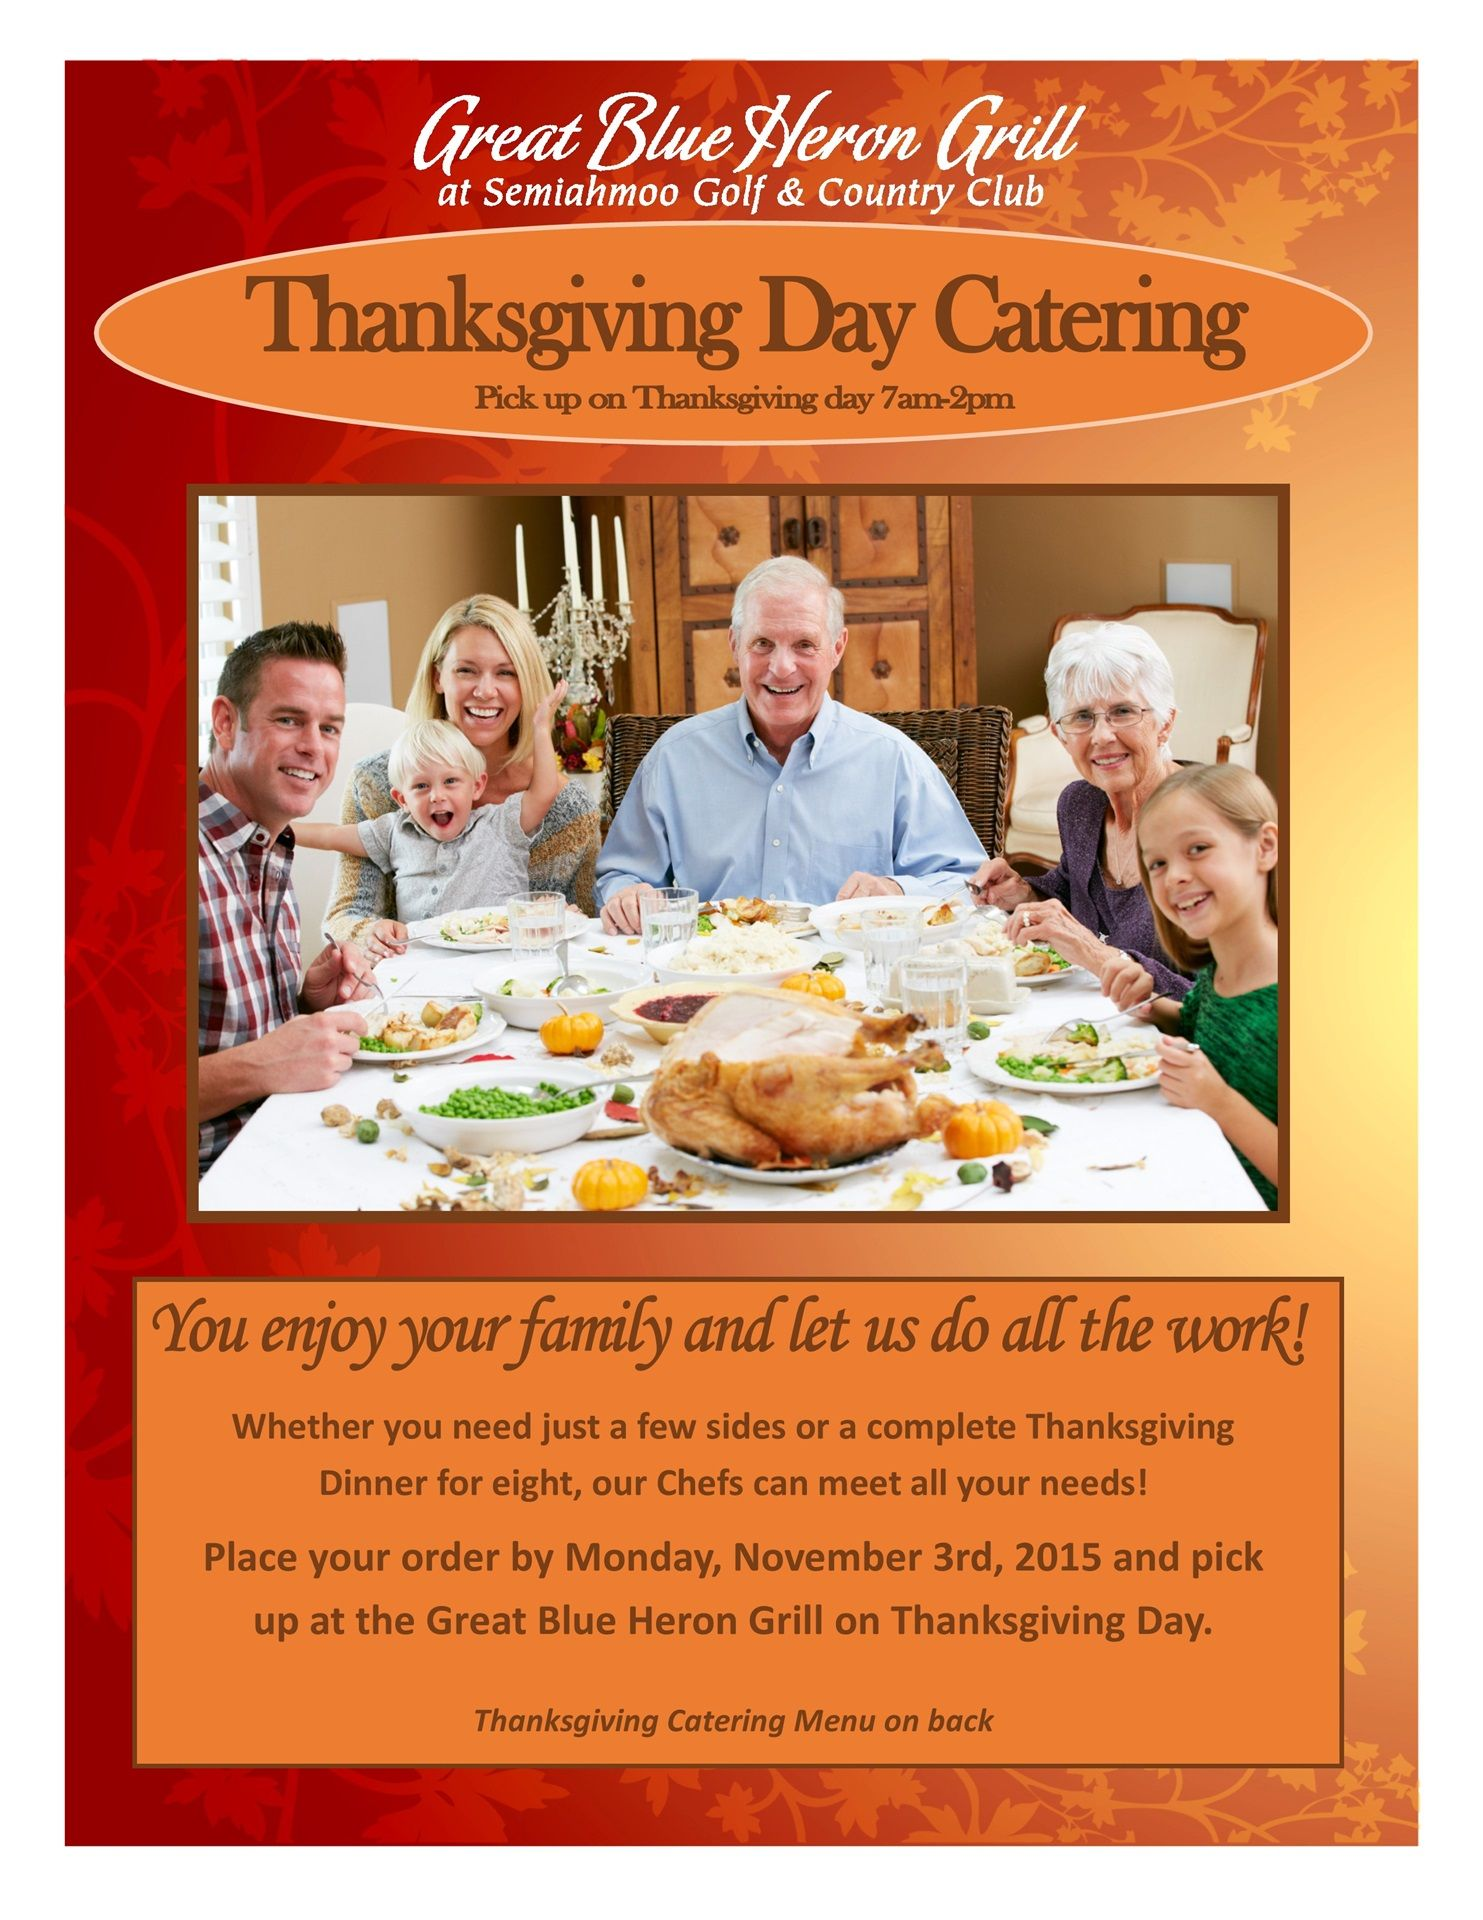 Gbhg Thanksgiving Catering Page Whatcomtalk